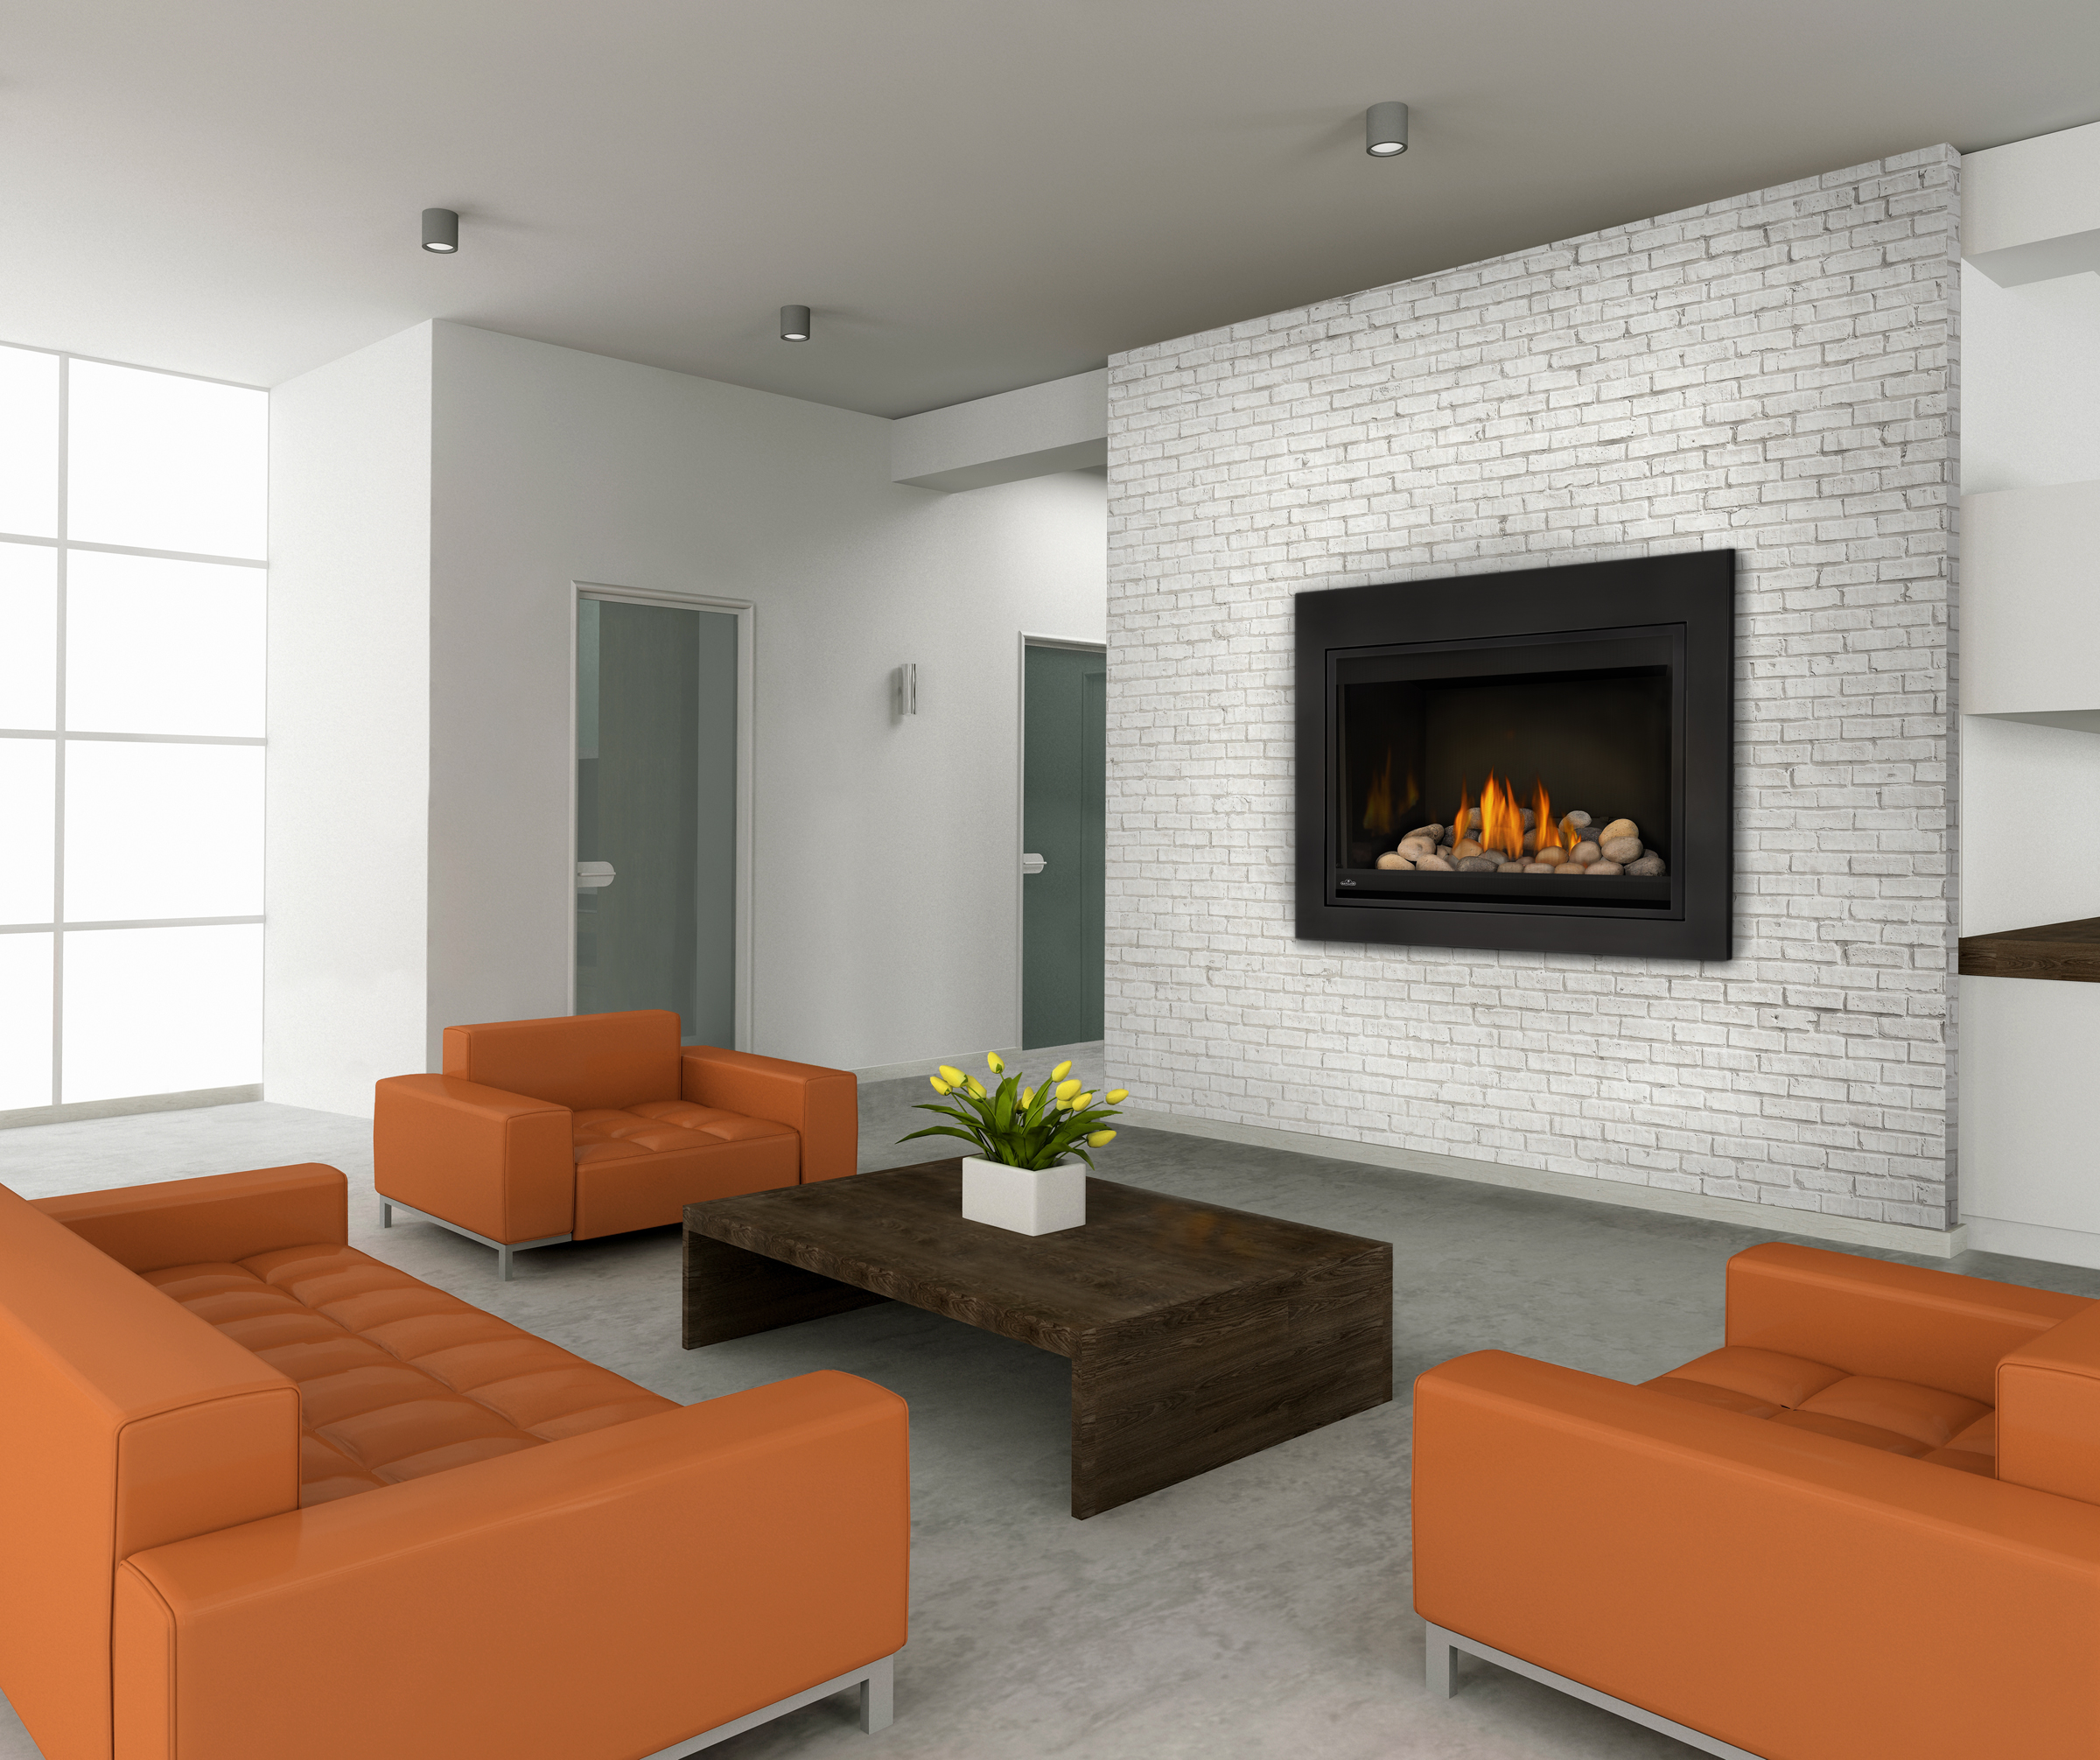 hei inch sears prod fireplace allure wall p napolean marketplace electric wid mount napoleon qlt linear